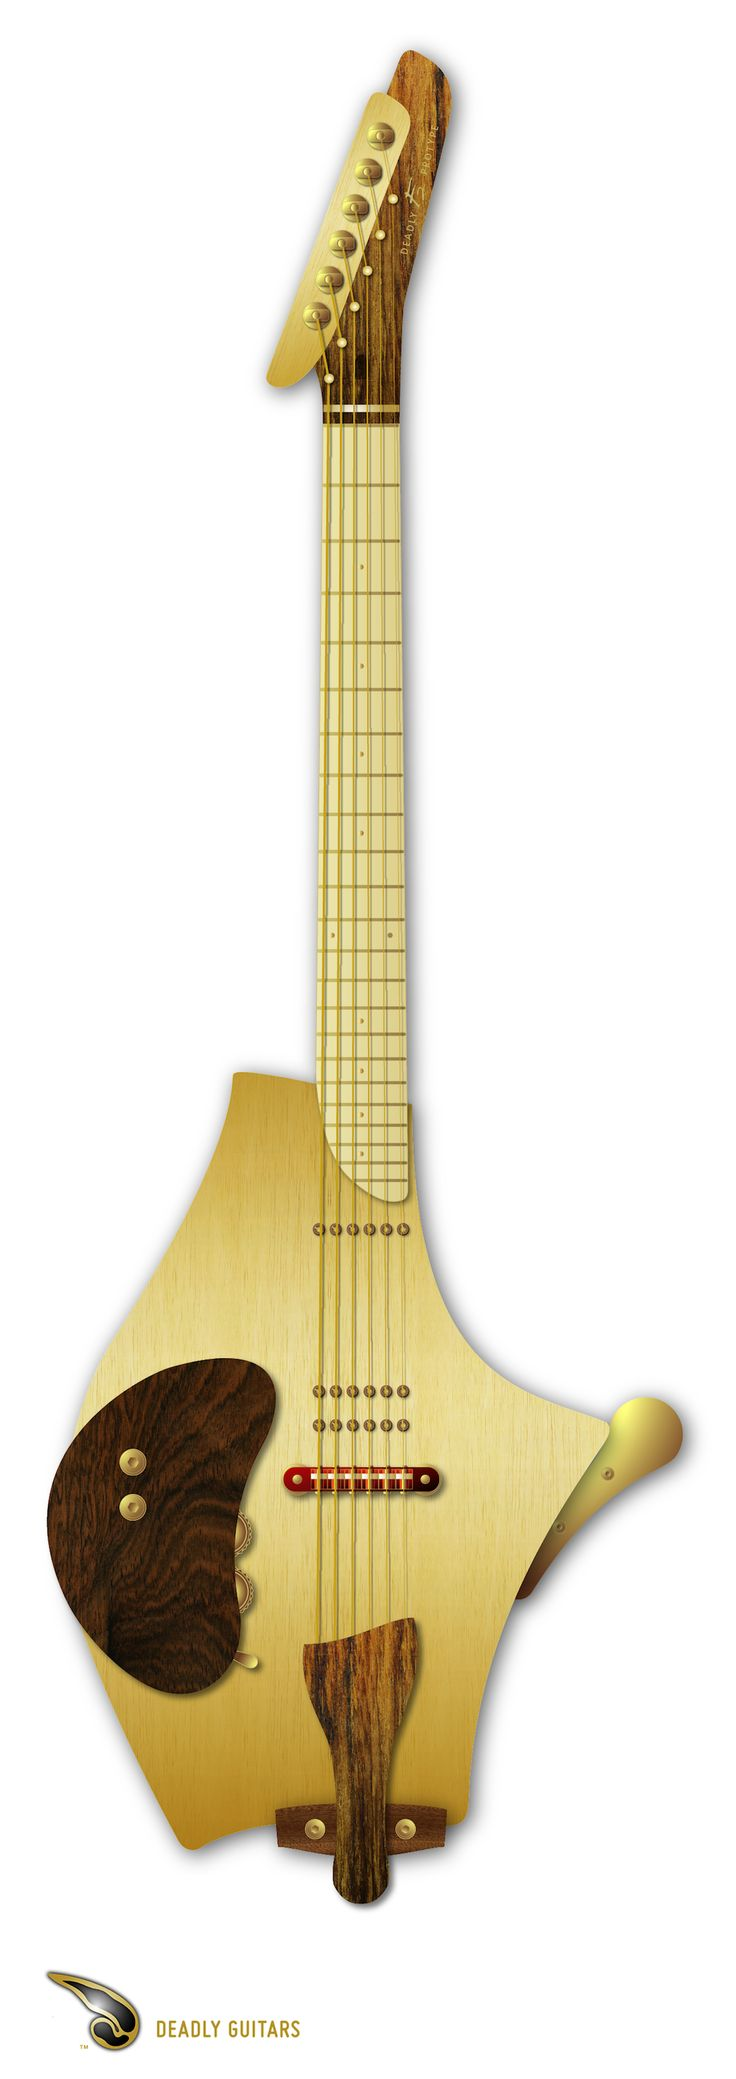 Bil Andersen Deadly F2 design - a tribute to Hiroshiro Matsuda. It will be a magnetic & piezo hybrid semi-acoustic.